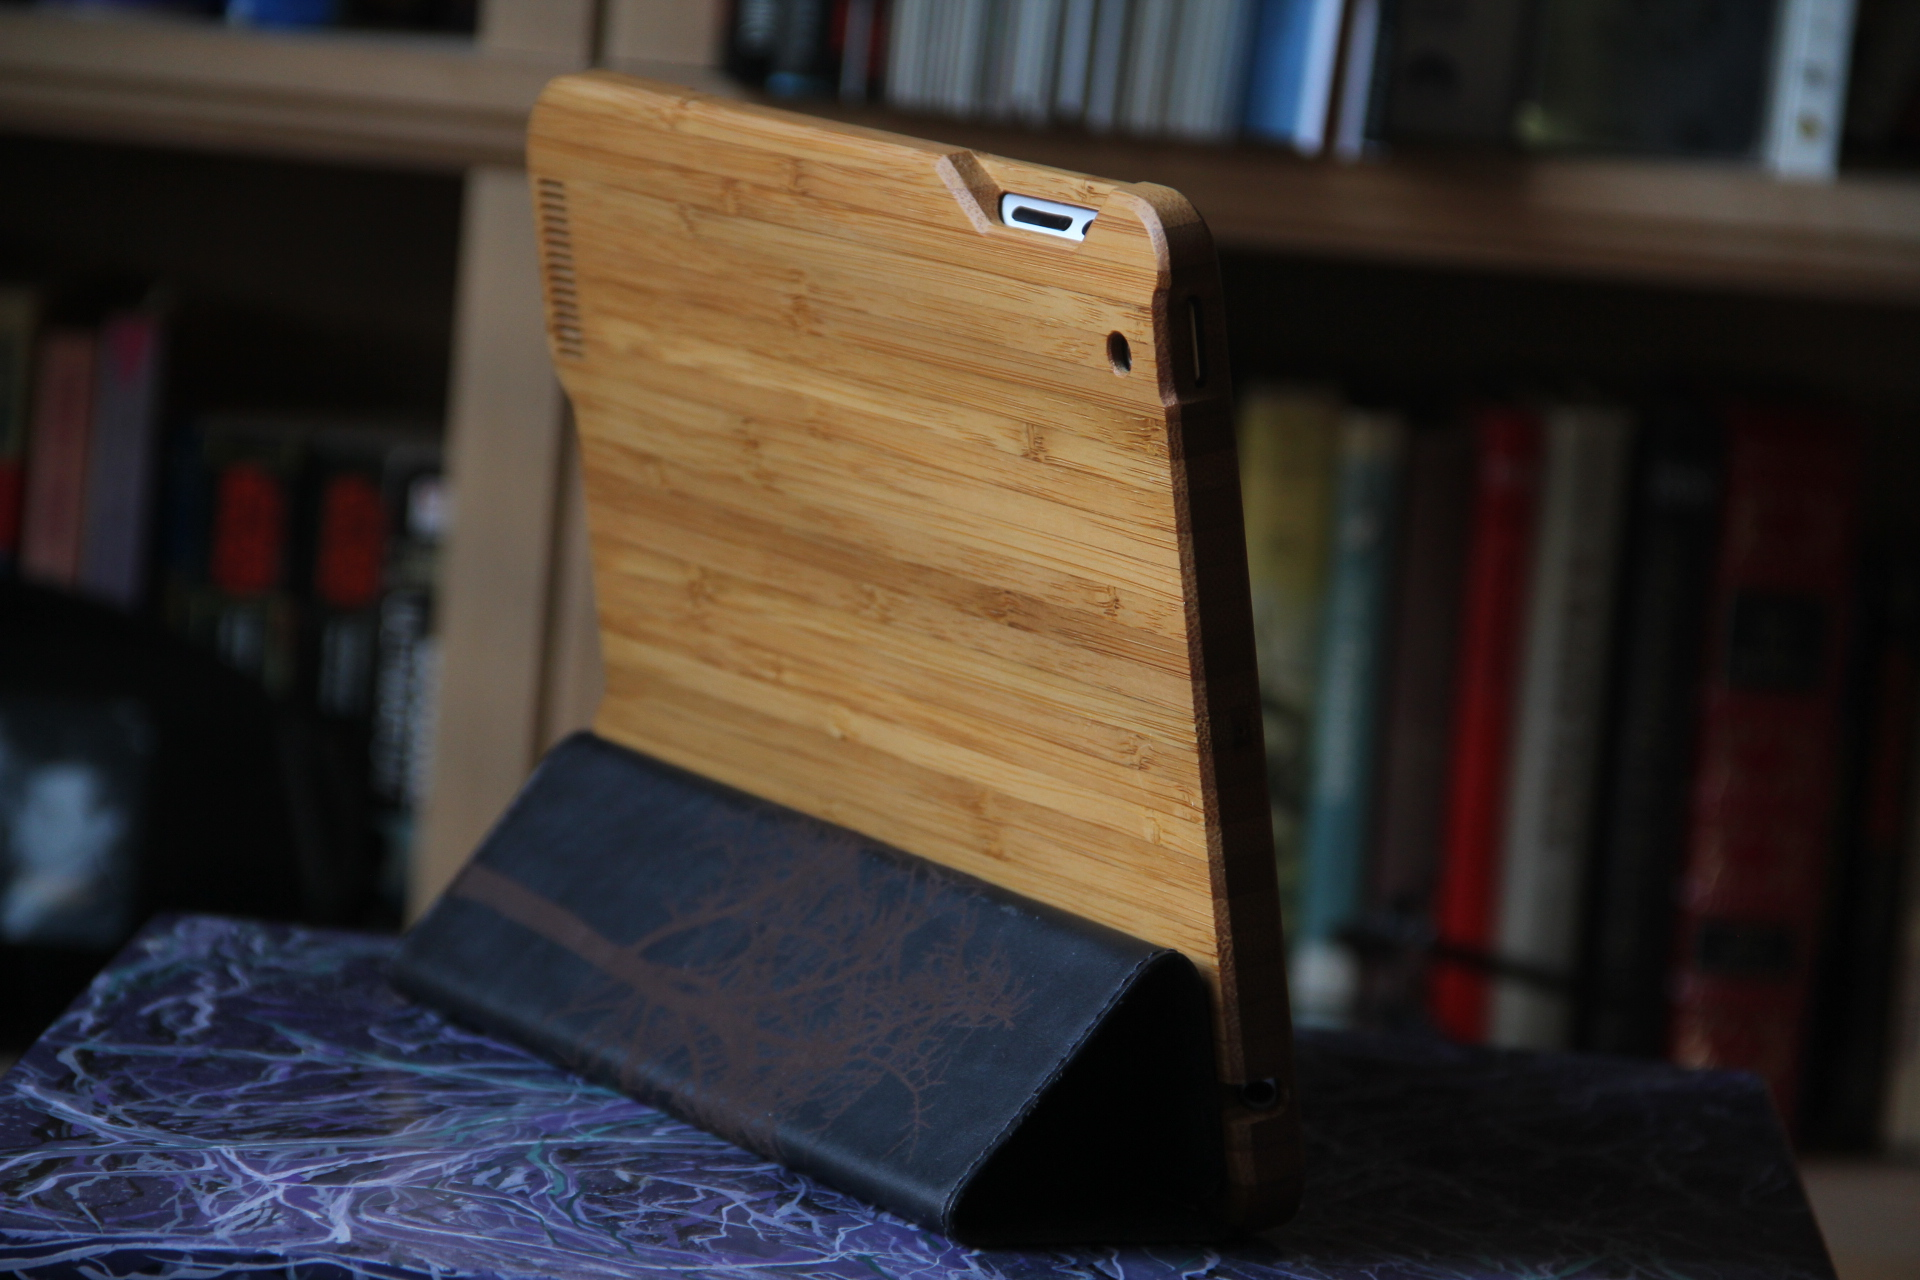 TNW Review: Grove uses bamboo, leather and lasers to protect your iPad 2